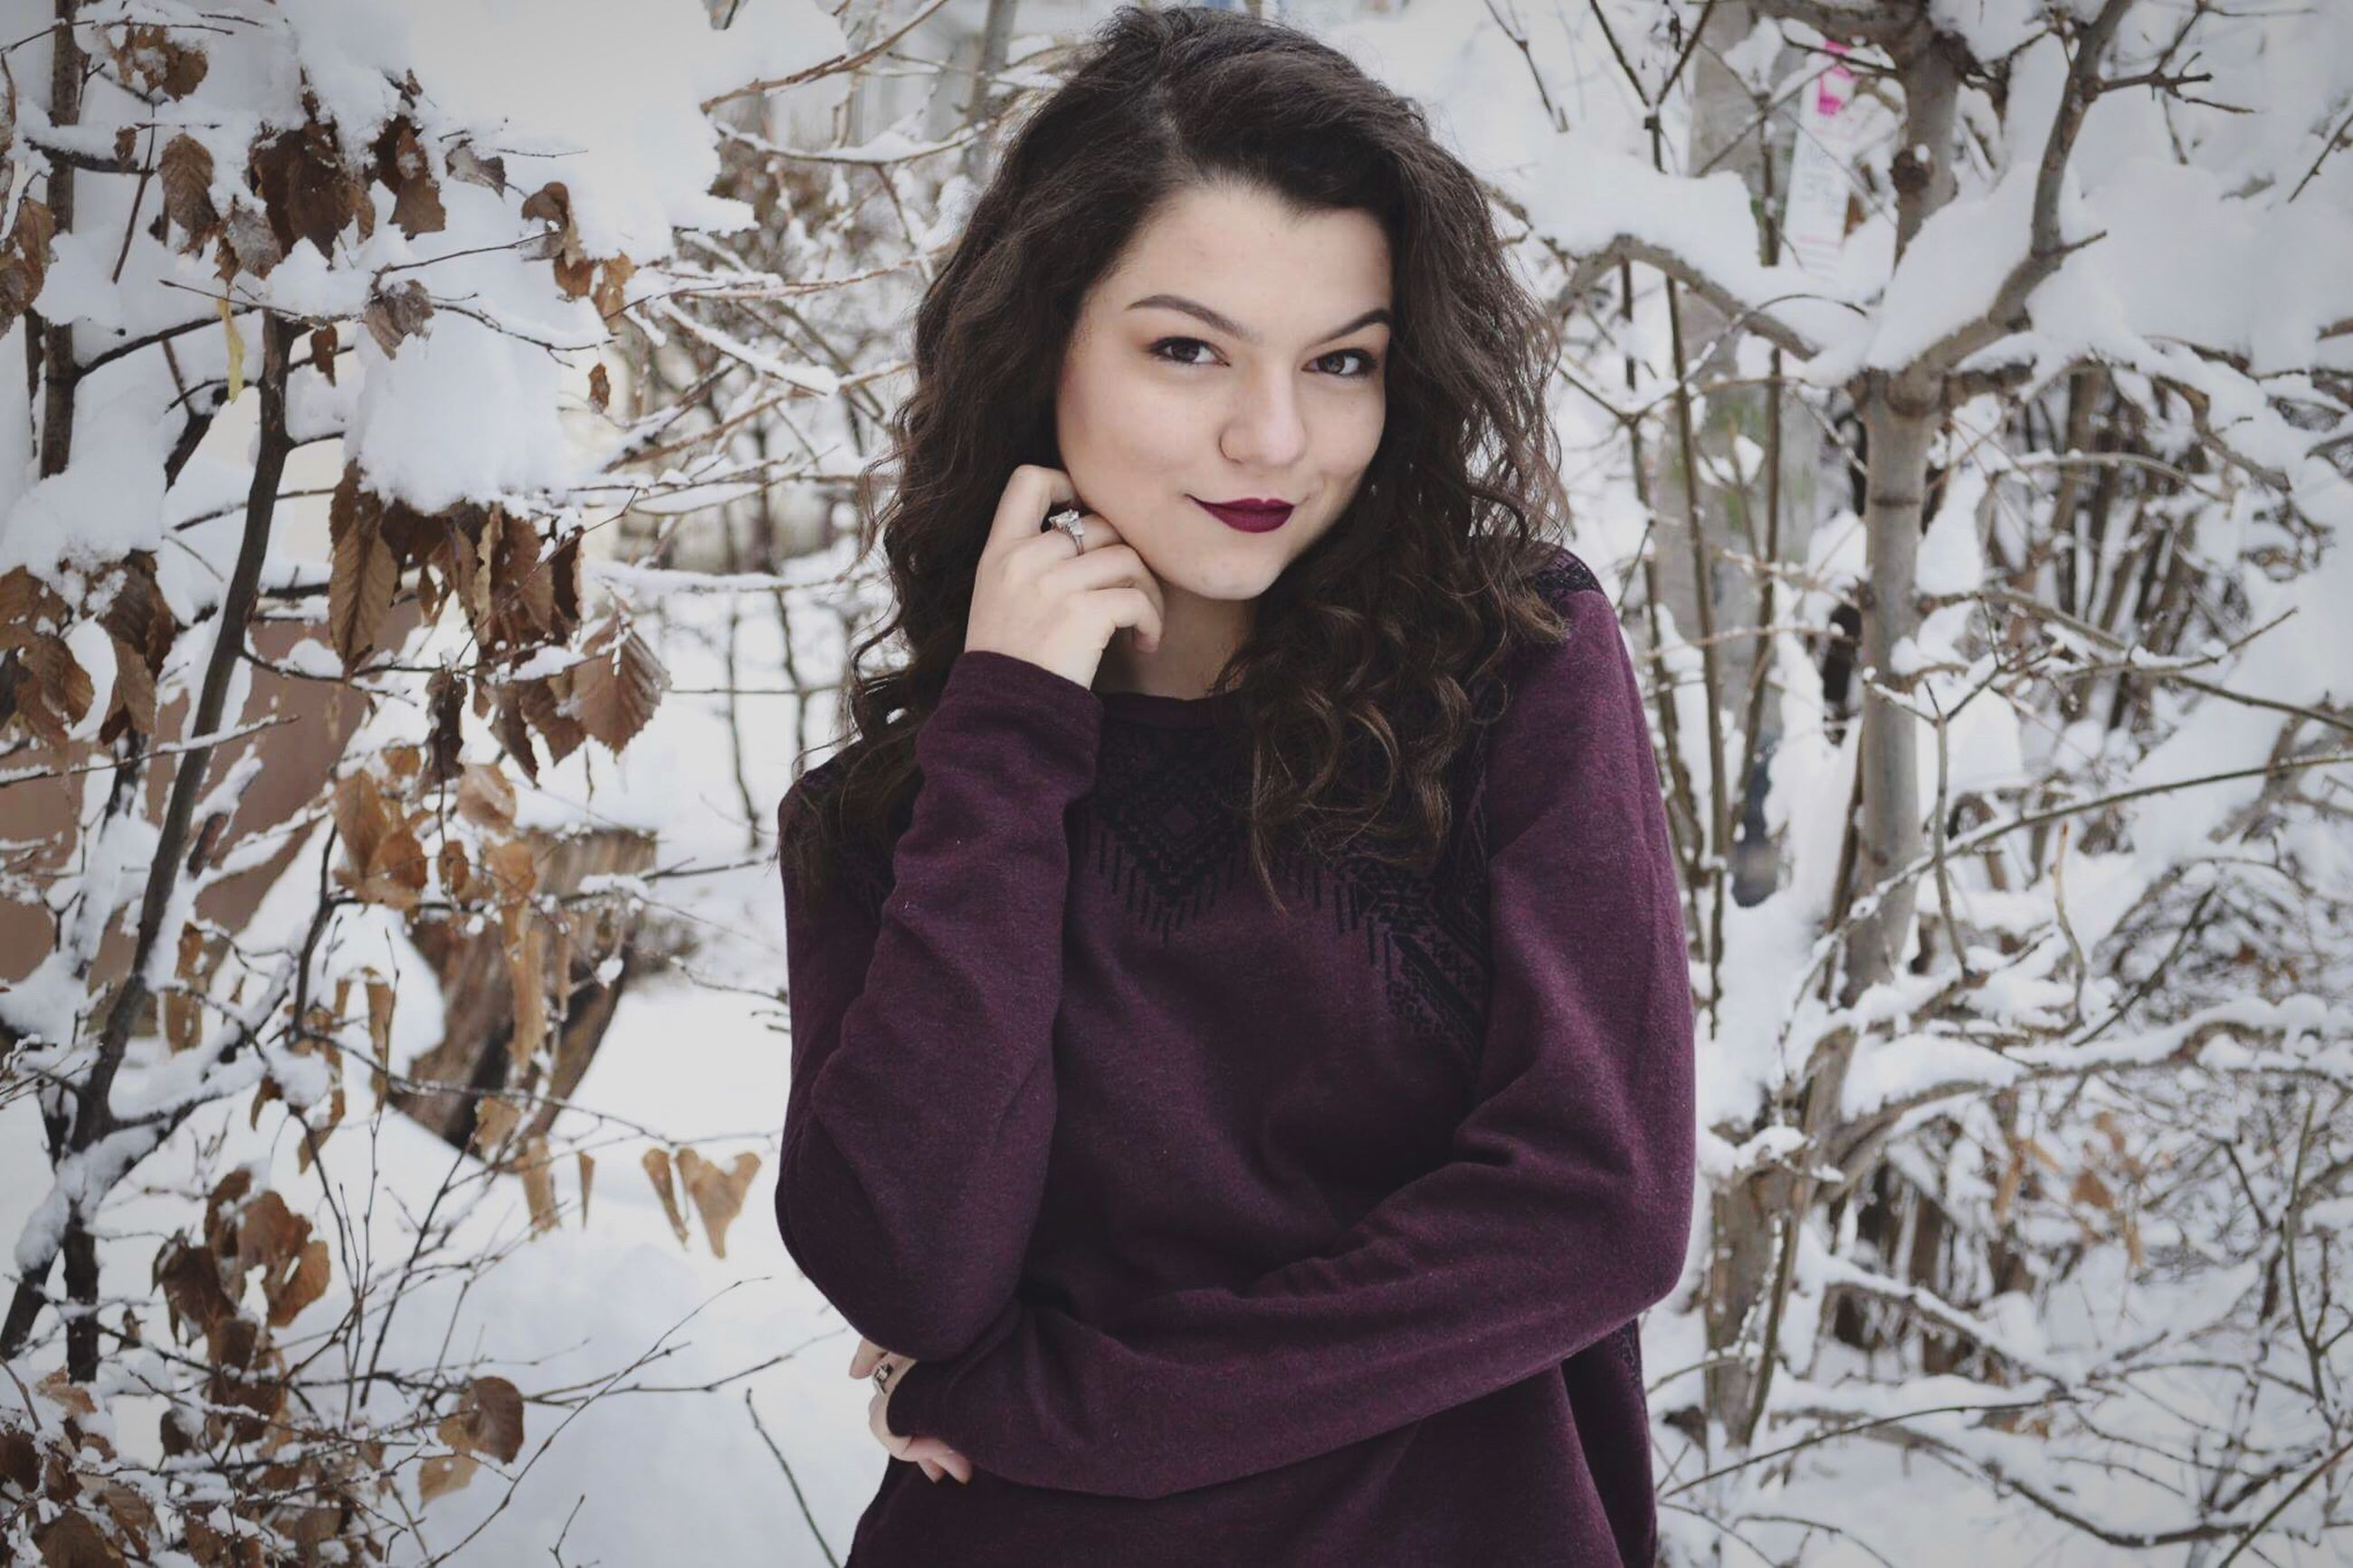 winter, portrait, looking at camera, cold temperature, snow, tree, long hair, front view, one person, young adult, nature, beauty, warm clothing, beautiful people, beautiful woman, people, confidence, one young woman only, adults only, adult, one woman only, young women, outdoors, smiling, only women, human body part, day